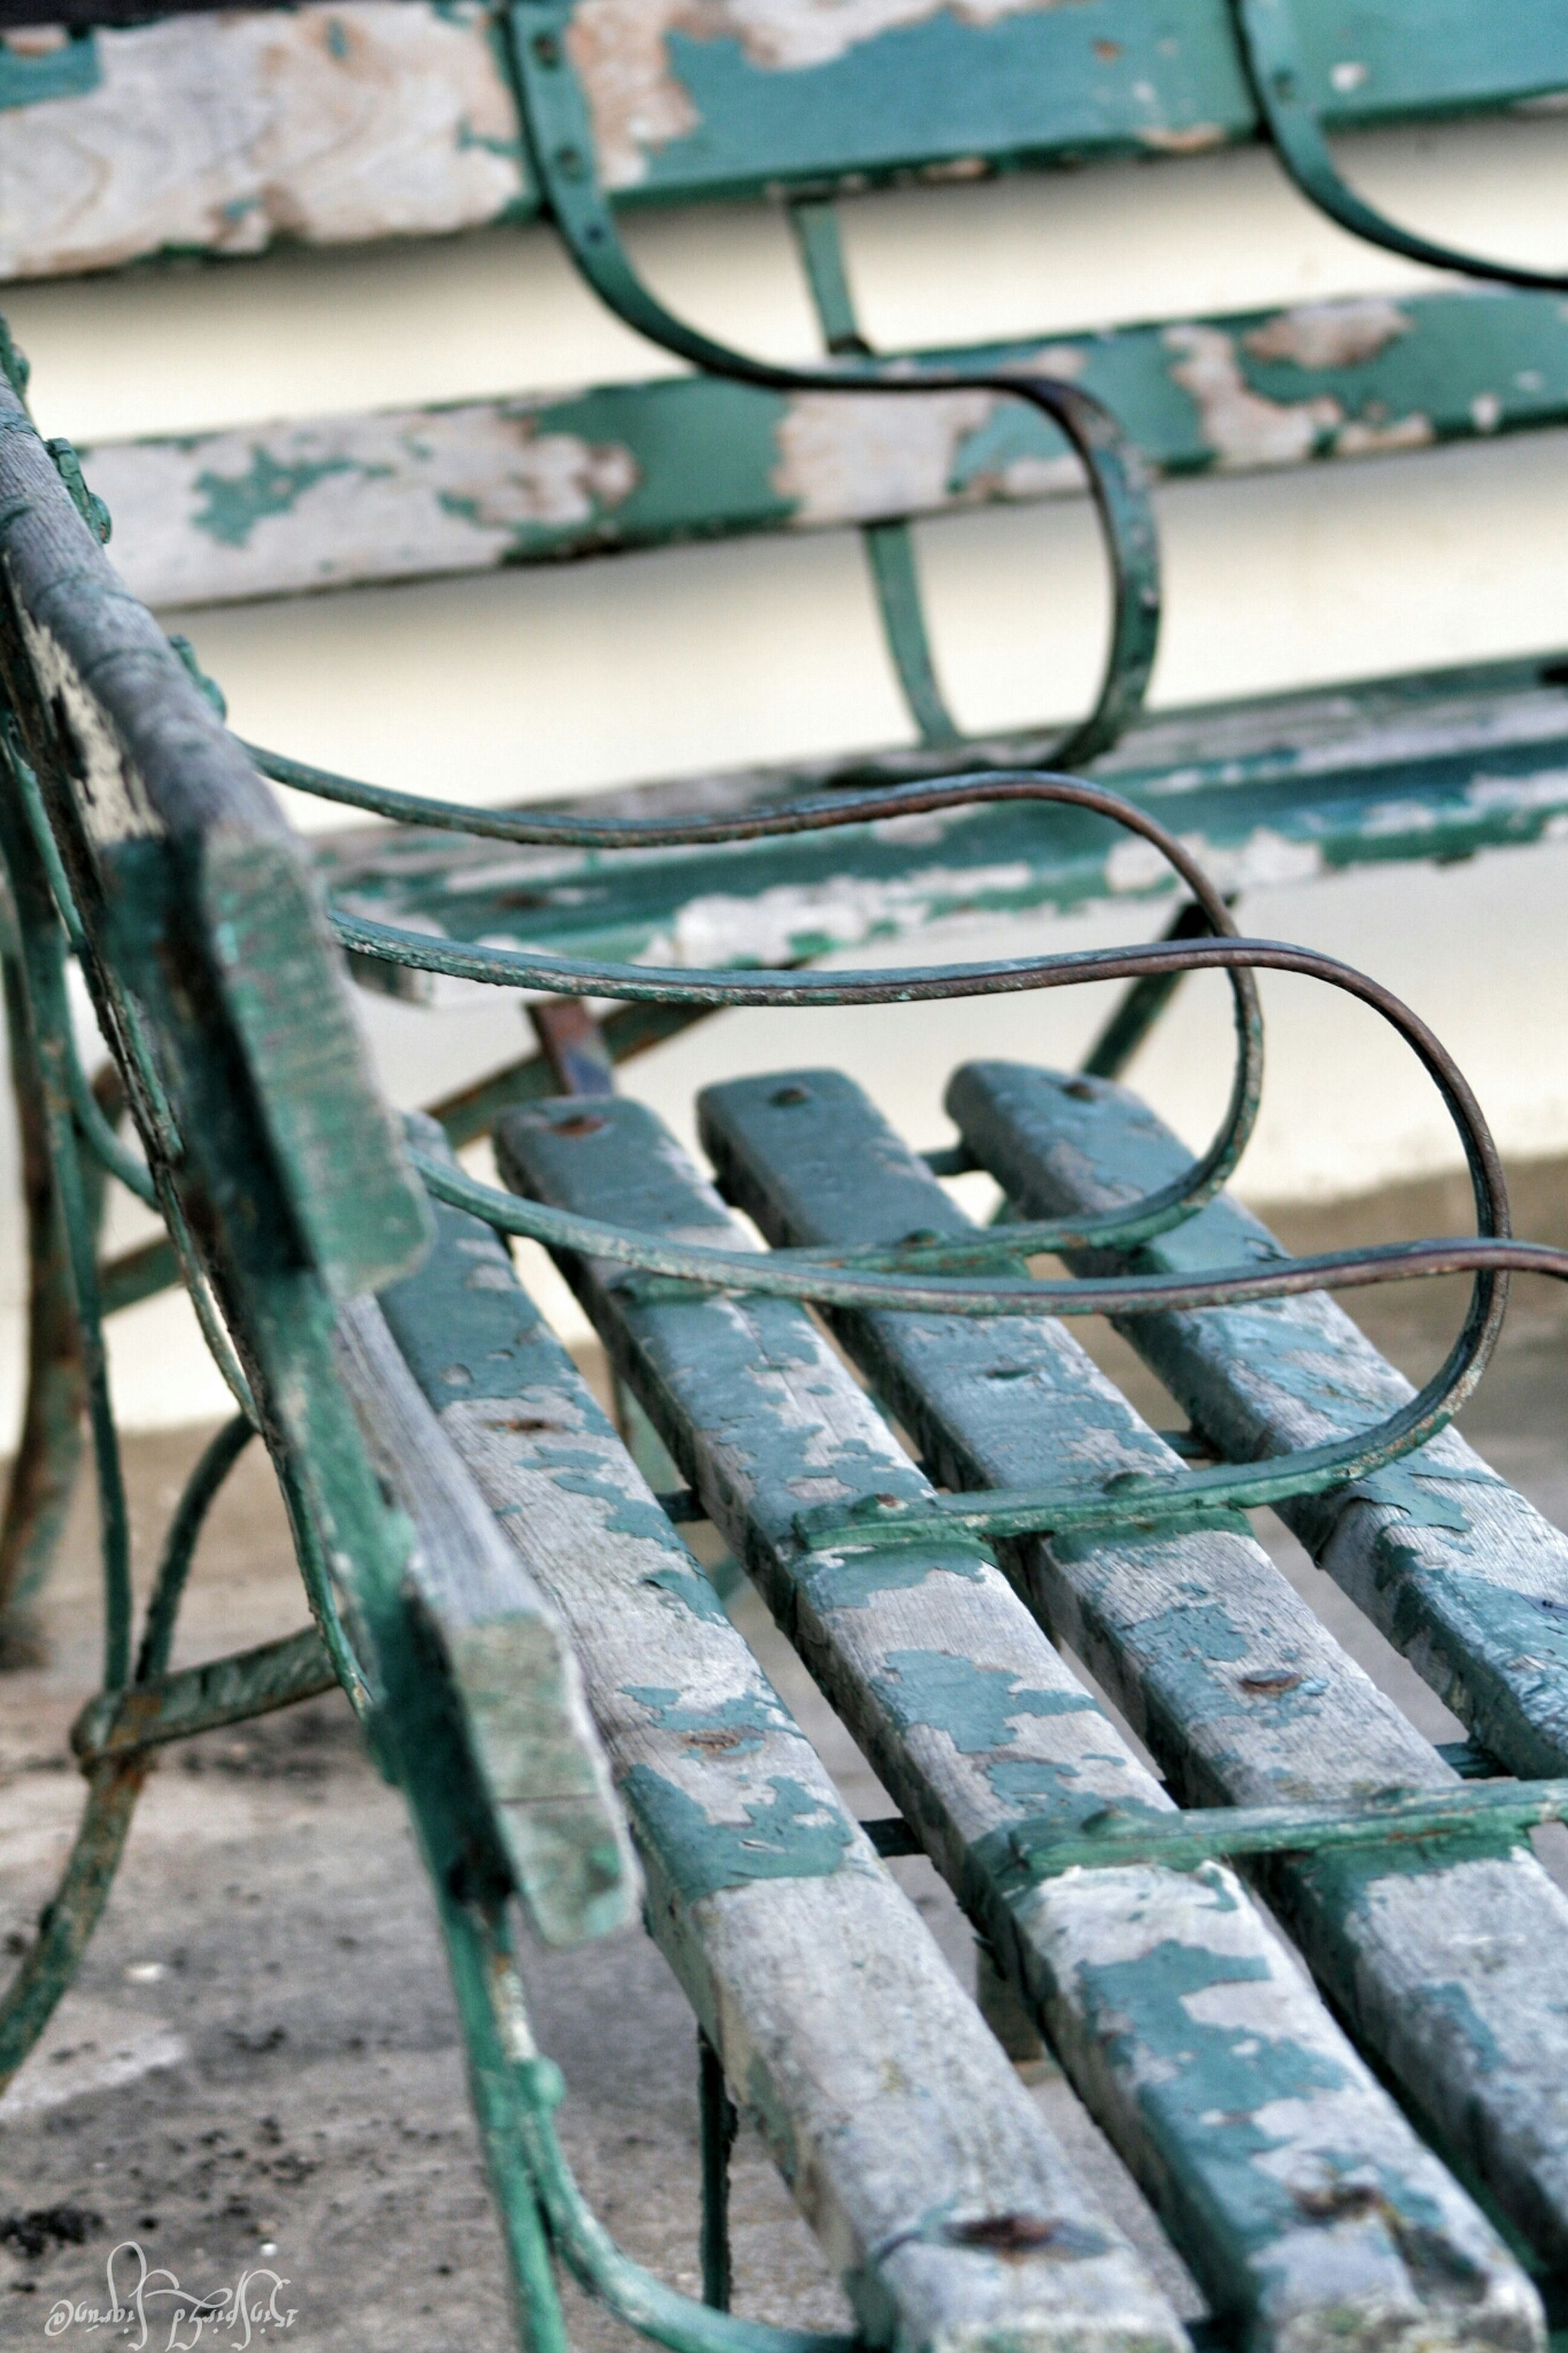 metal, pattern, metallic, close-up, railing, no people, sunlight, day, rusty, in a row, outdoors, design, old, built structure, high angle view, rope, textured, fence, wall - building feature, focus on foreground